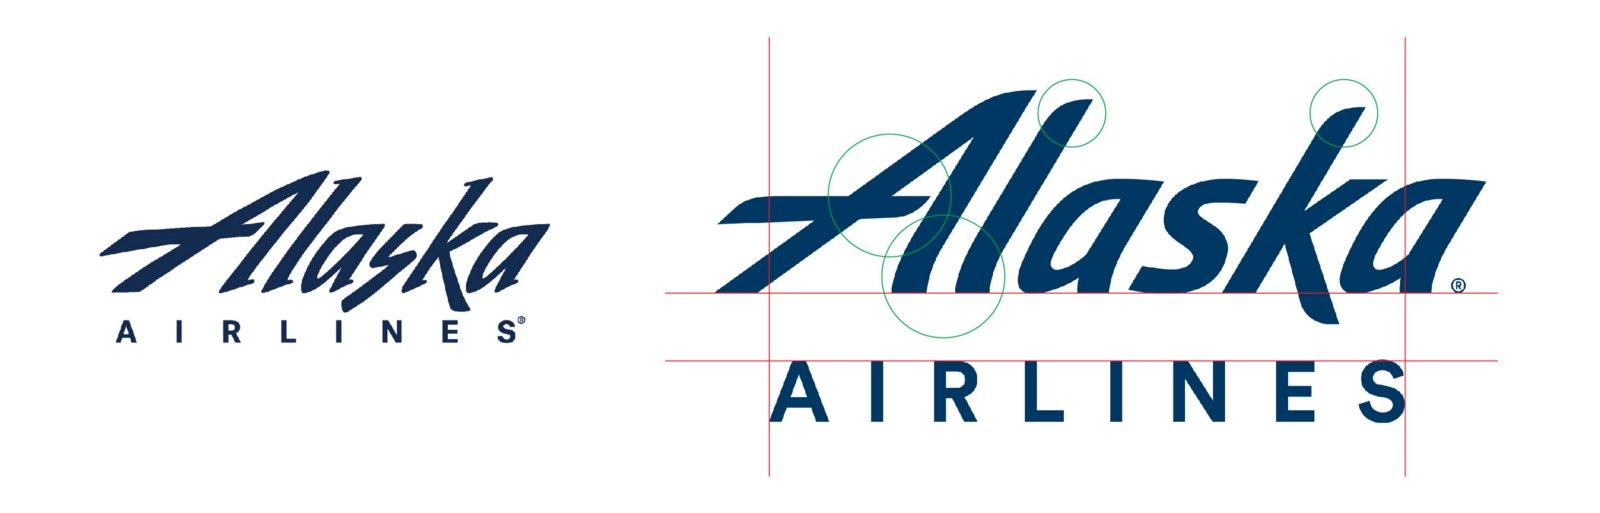 Alaska Airlines Logo - A Closer Look at the 2016 Alaska Airlines Rebrand – Look and Logo ...